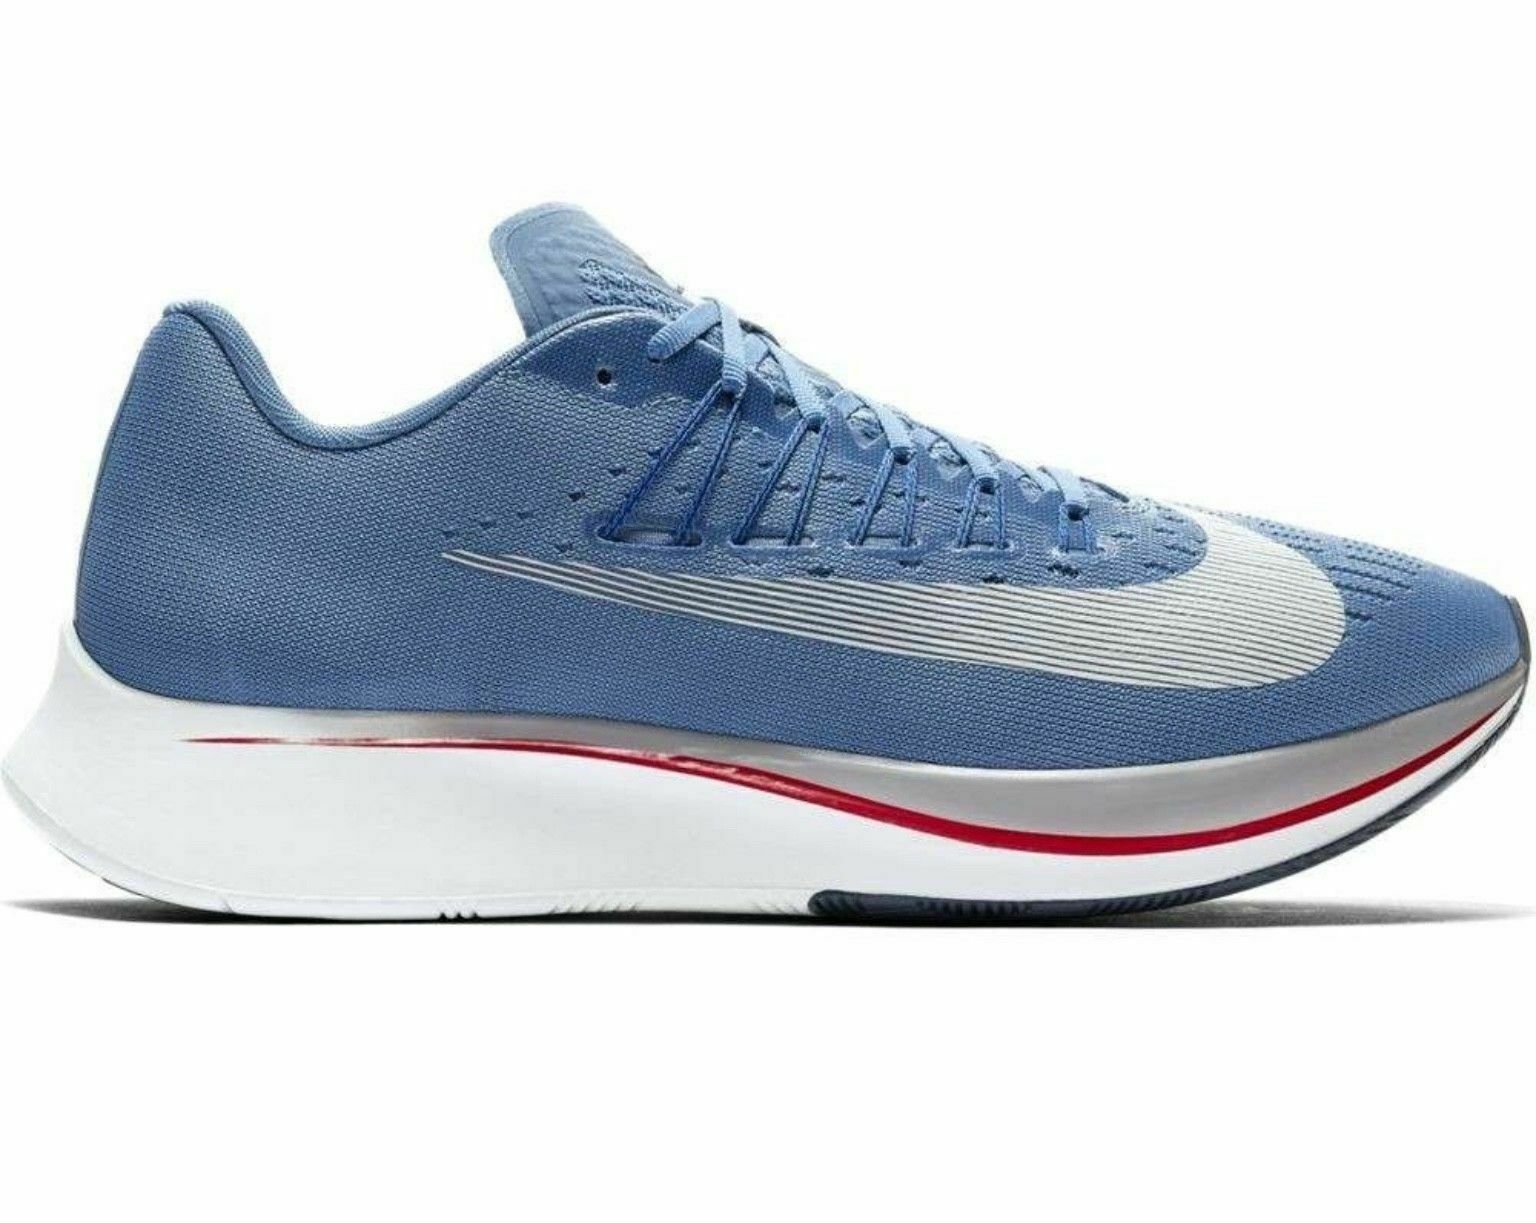 NIKE ZOOM FLY Running Trainers Gym Casual  - - - () - Aegean Storm bluee 22019b